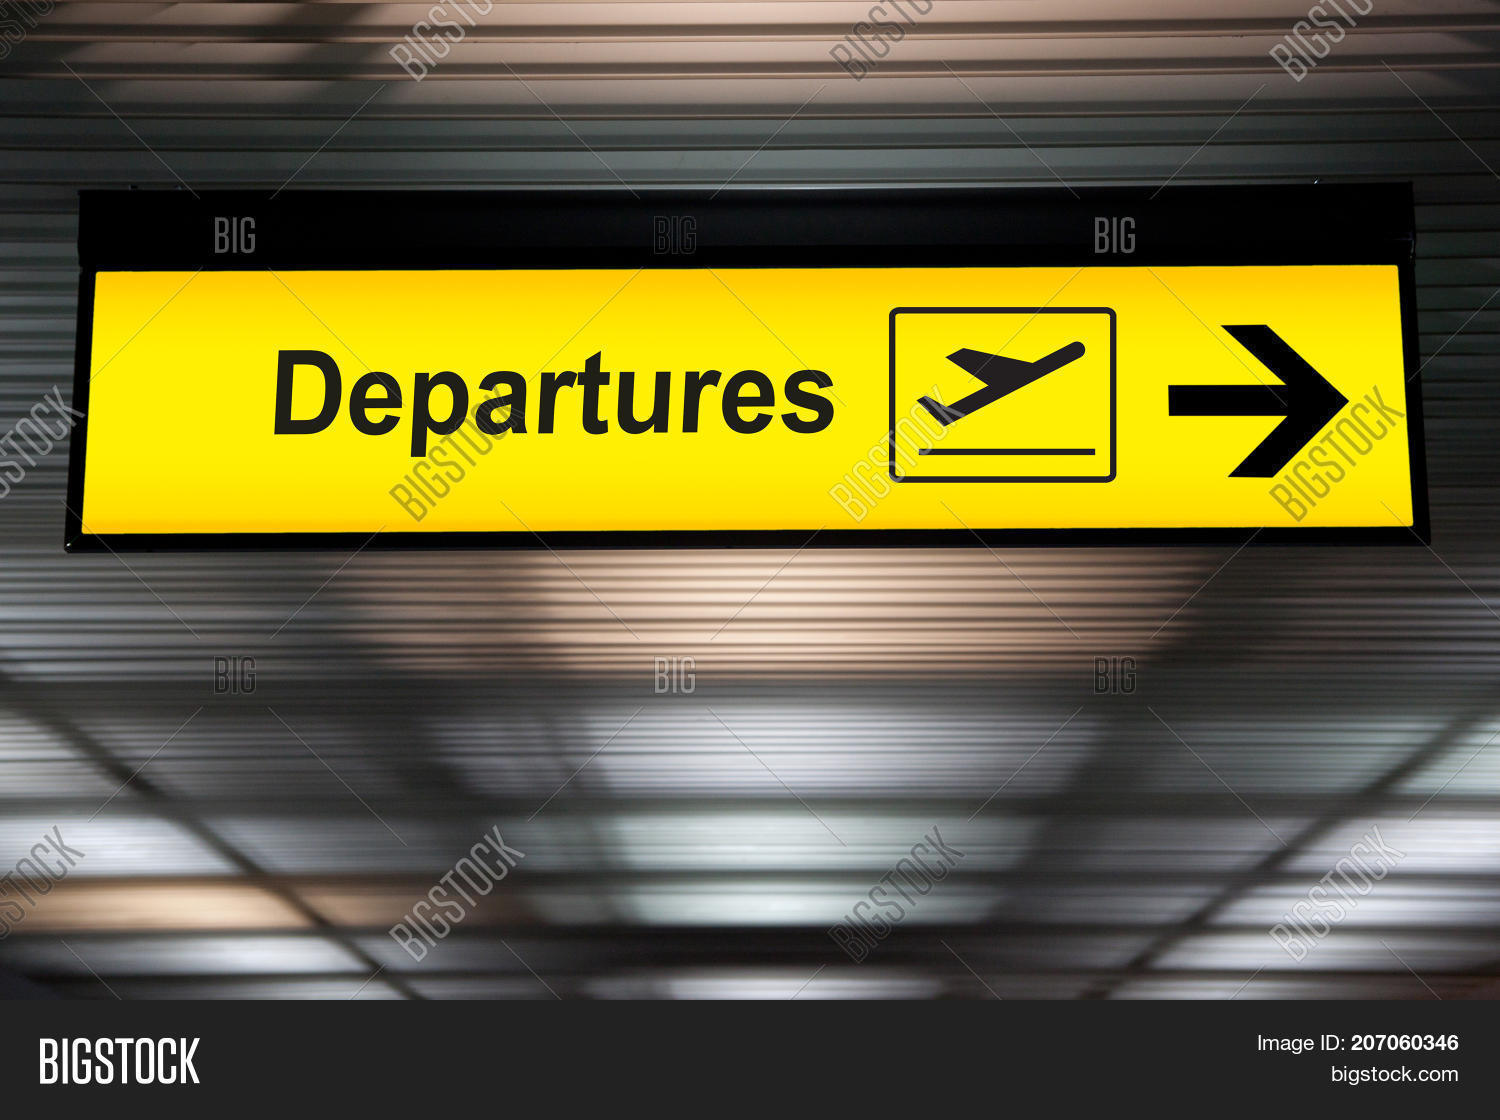 airport departure sign image